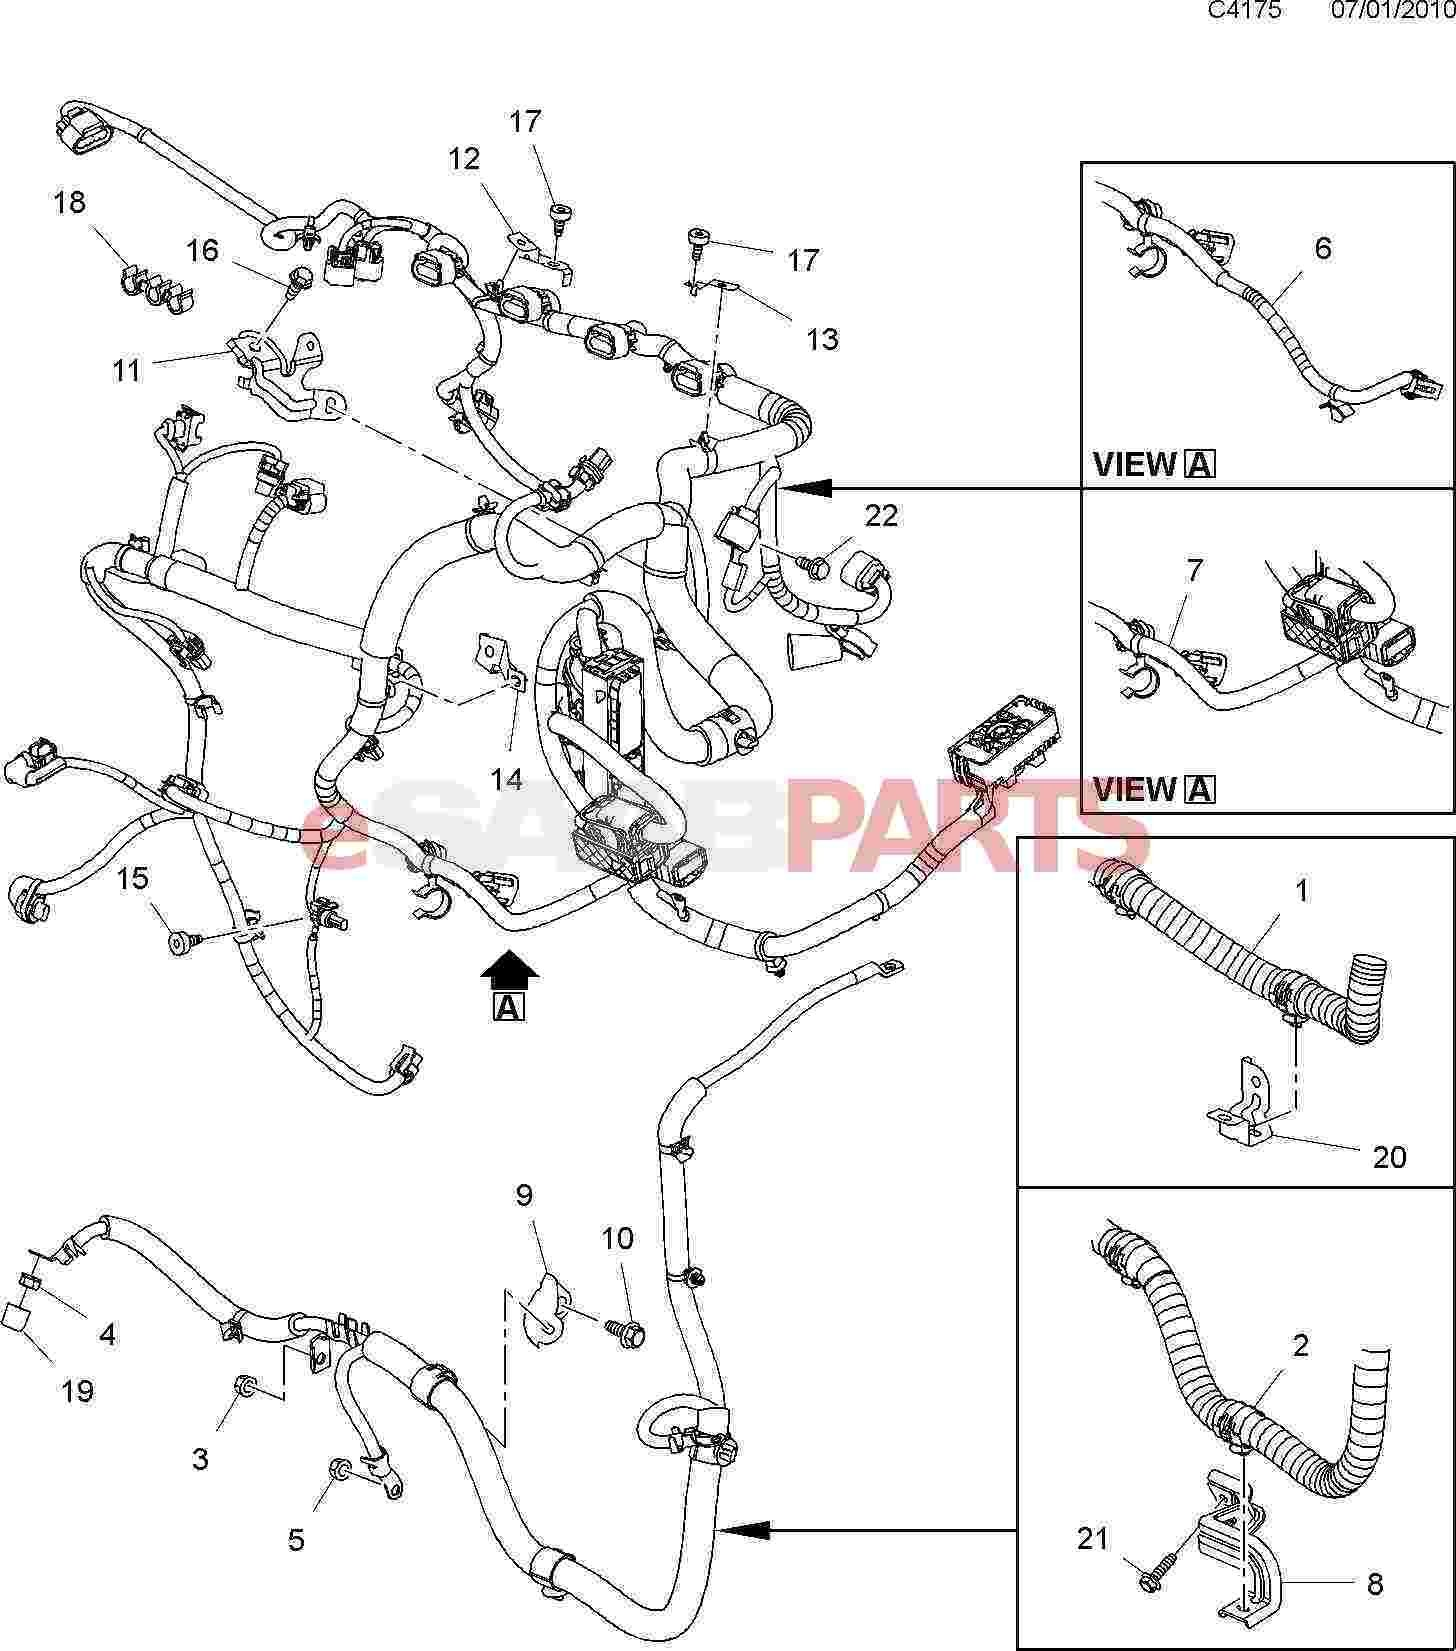 2003 Saab 9 3 Convertible Release Motor Rear Diagram Saab Wiring Of.